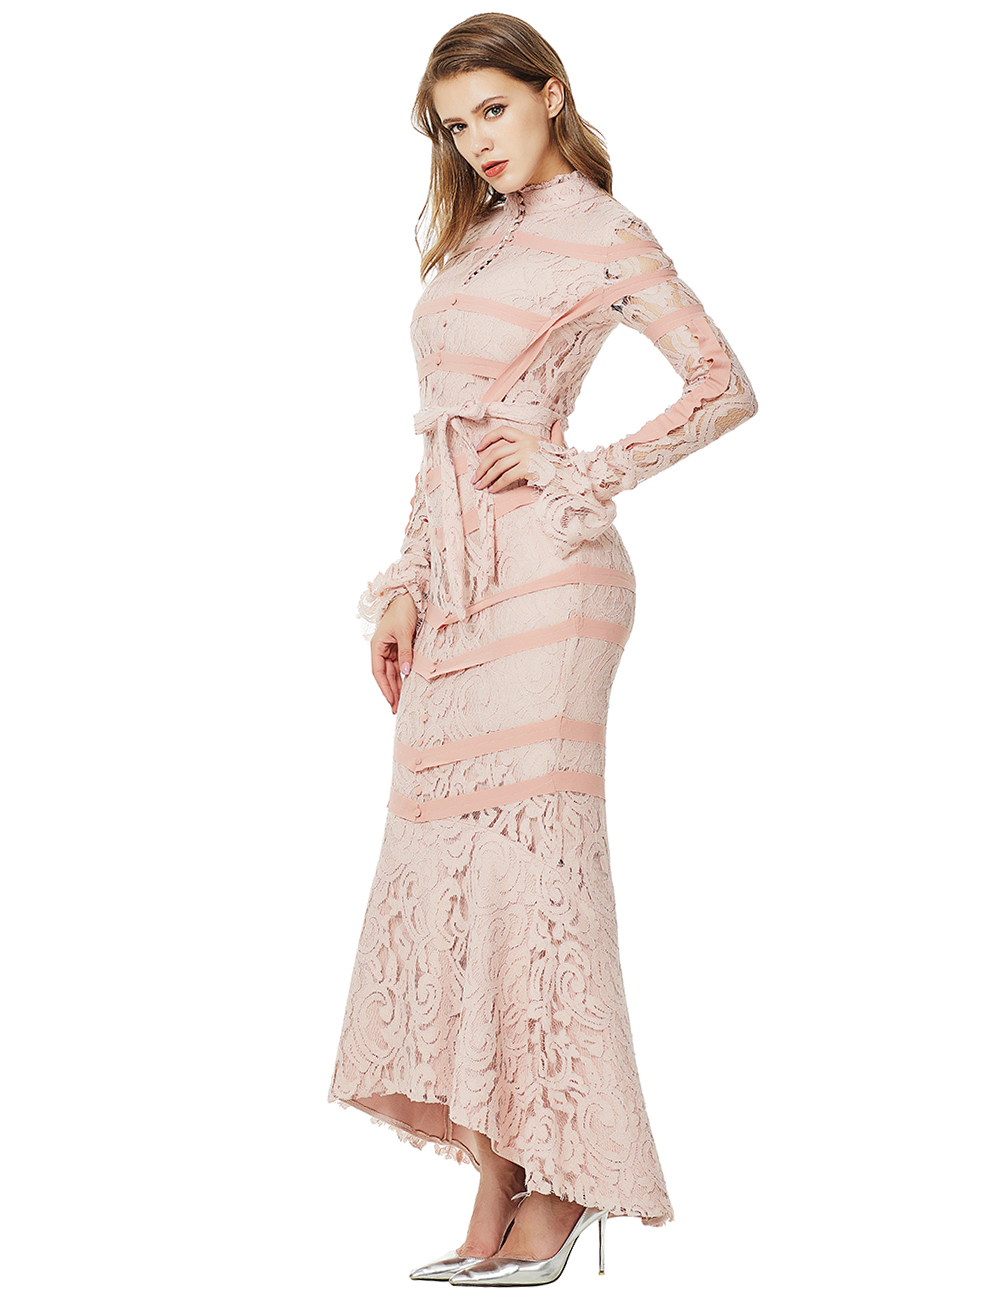 //cdn.affectcloud.com/hexinfashion/upload/imgs/Dress/Bandage_Dress/VZ190588-BE1/VZ190588-BE1-201911055dc120a524e7f.jpg